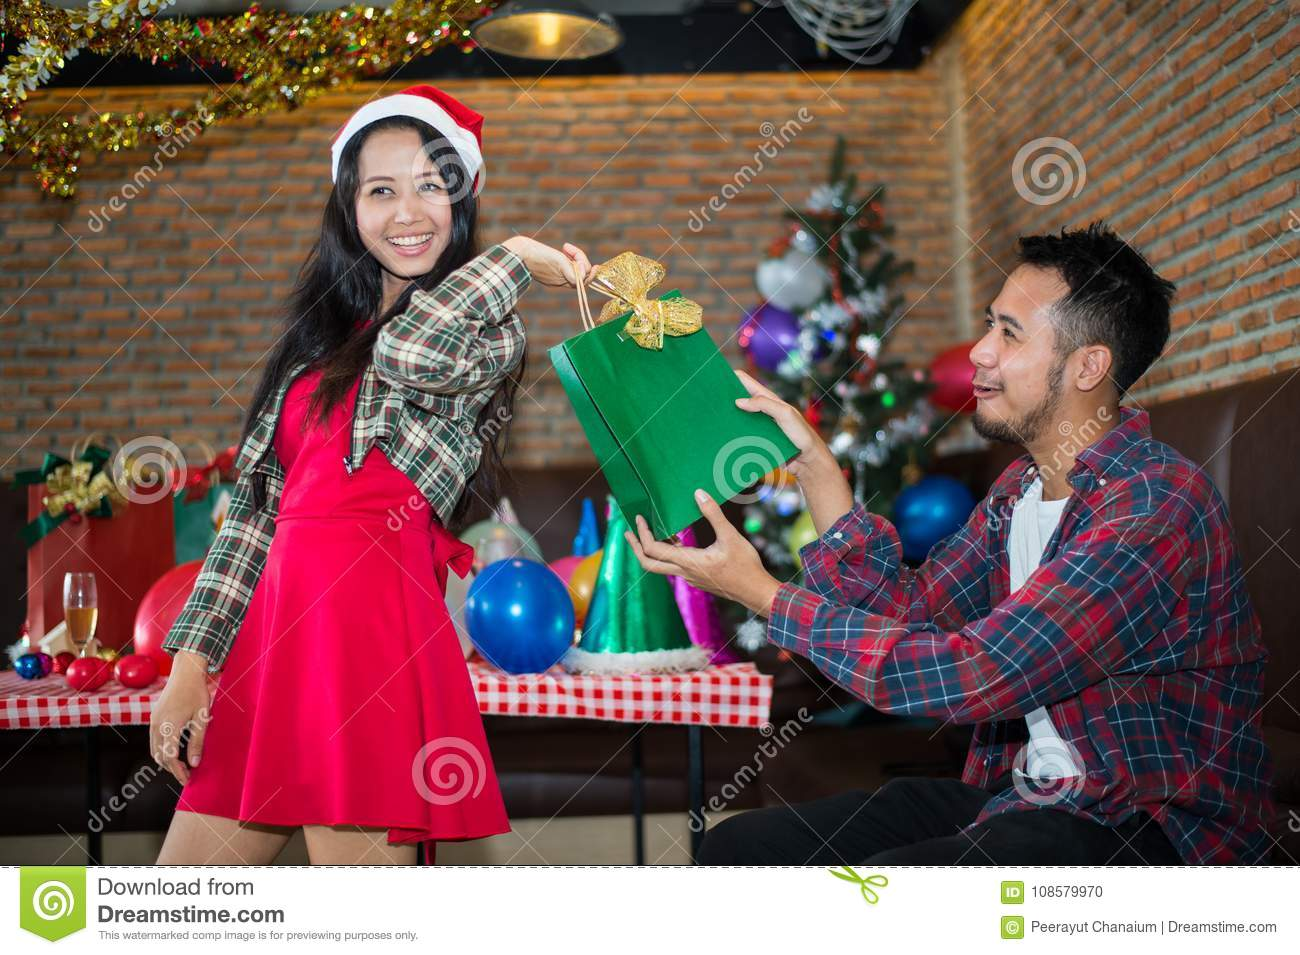 Handsome man sent green gift bag to beautiful woman, who wear red dress and santa claus hat at the party.